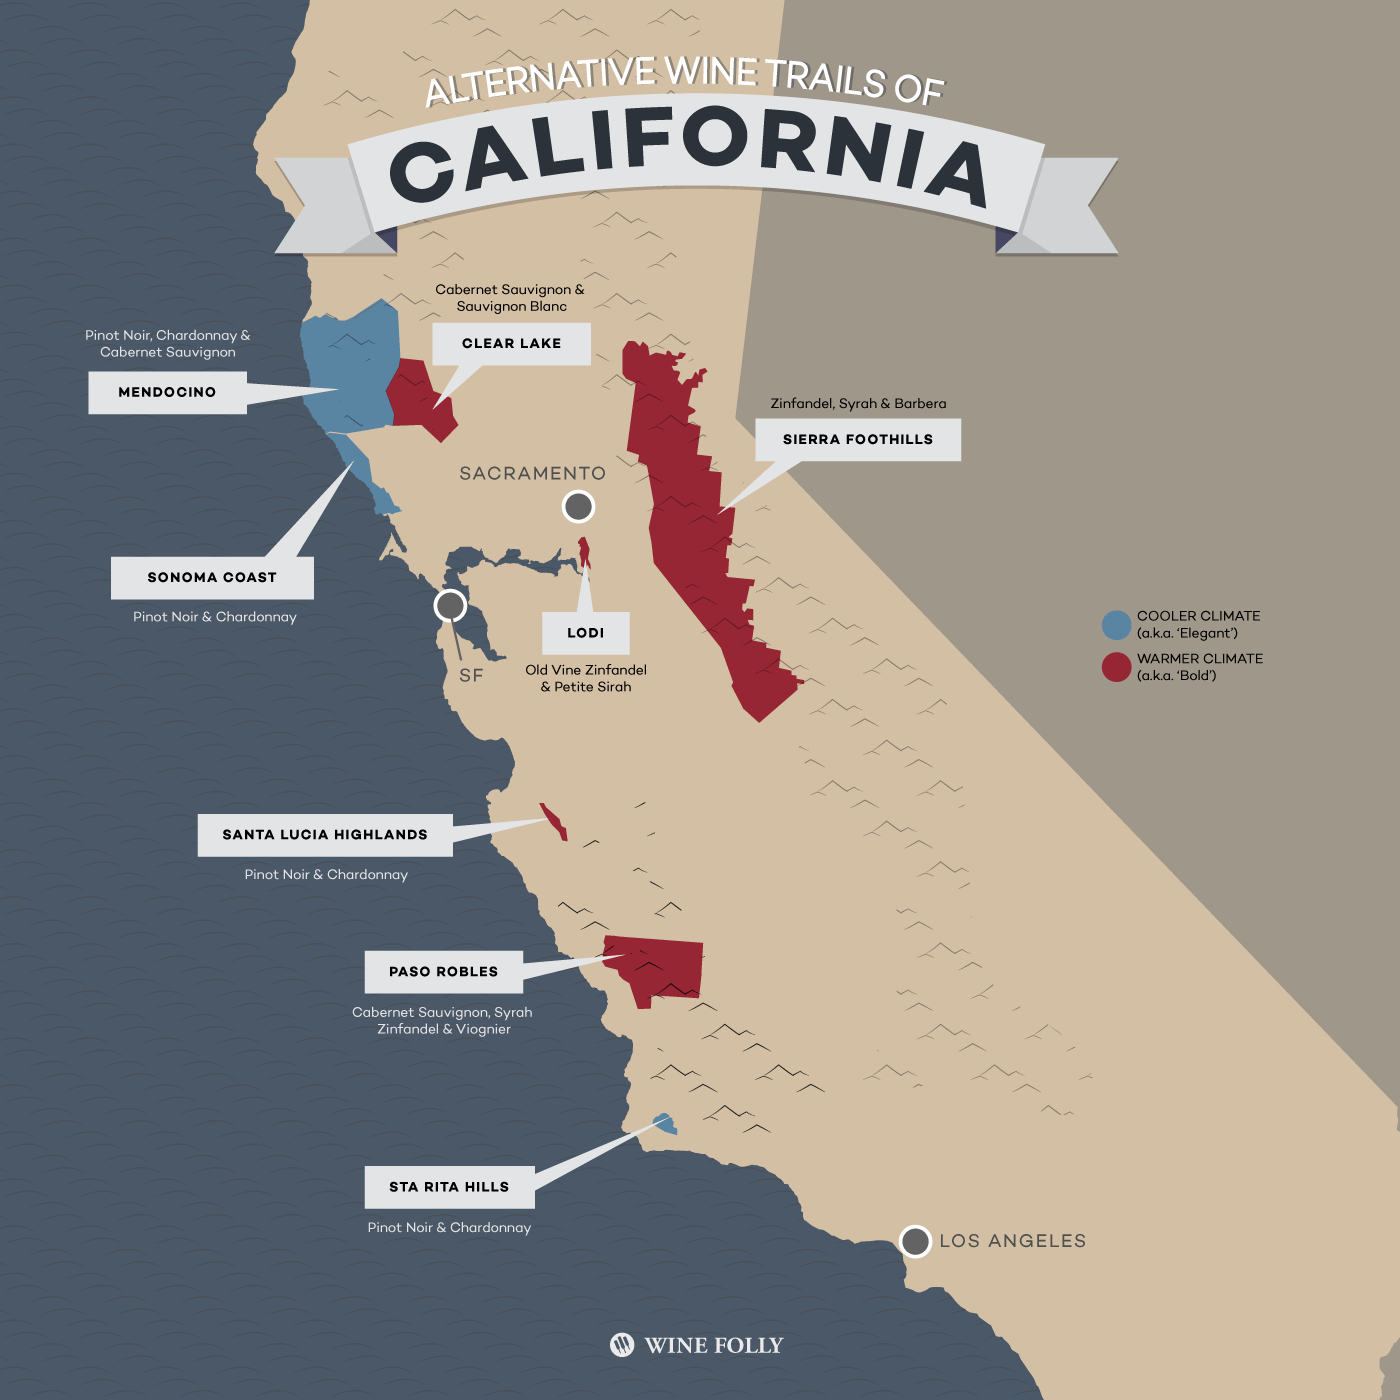 8 Alternative Wine Trails Of California | Wine Folly - Map Of Northern California Wineries